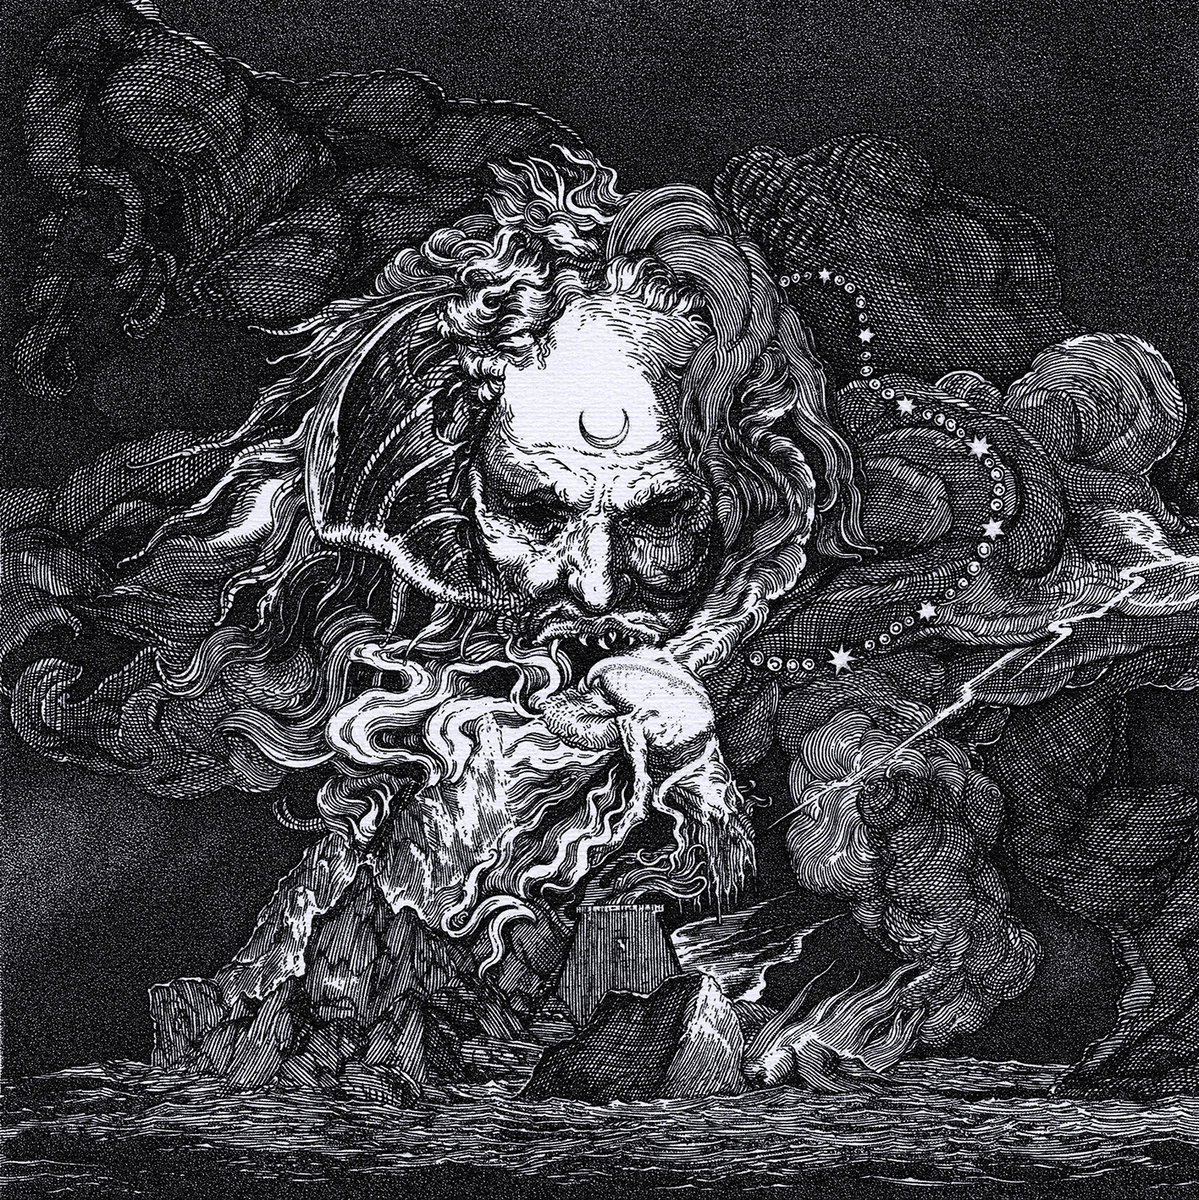 eggs of gomorrh / sarinvomit – encomium of depraved instincts [split]